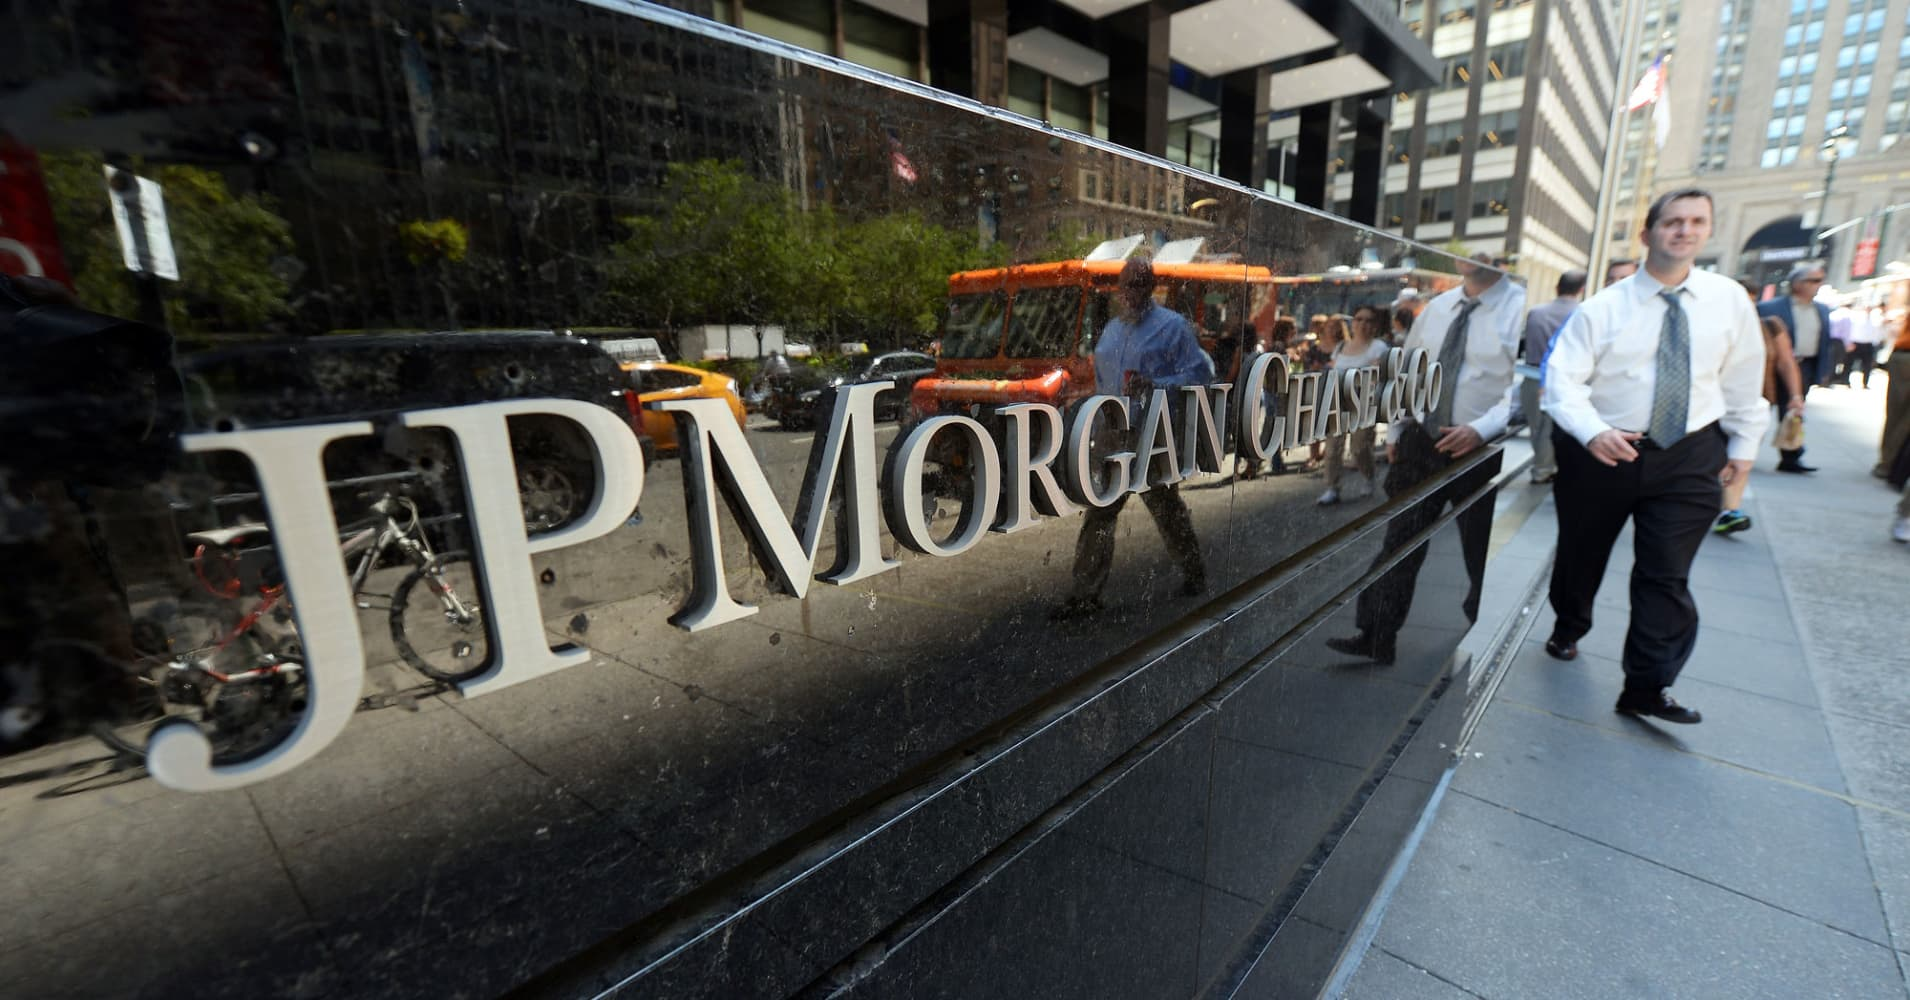 JPMorgan Chase to build a new headquarters in New York City